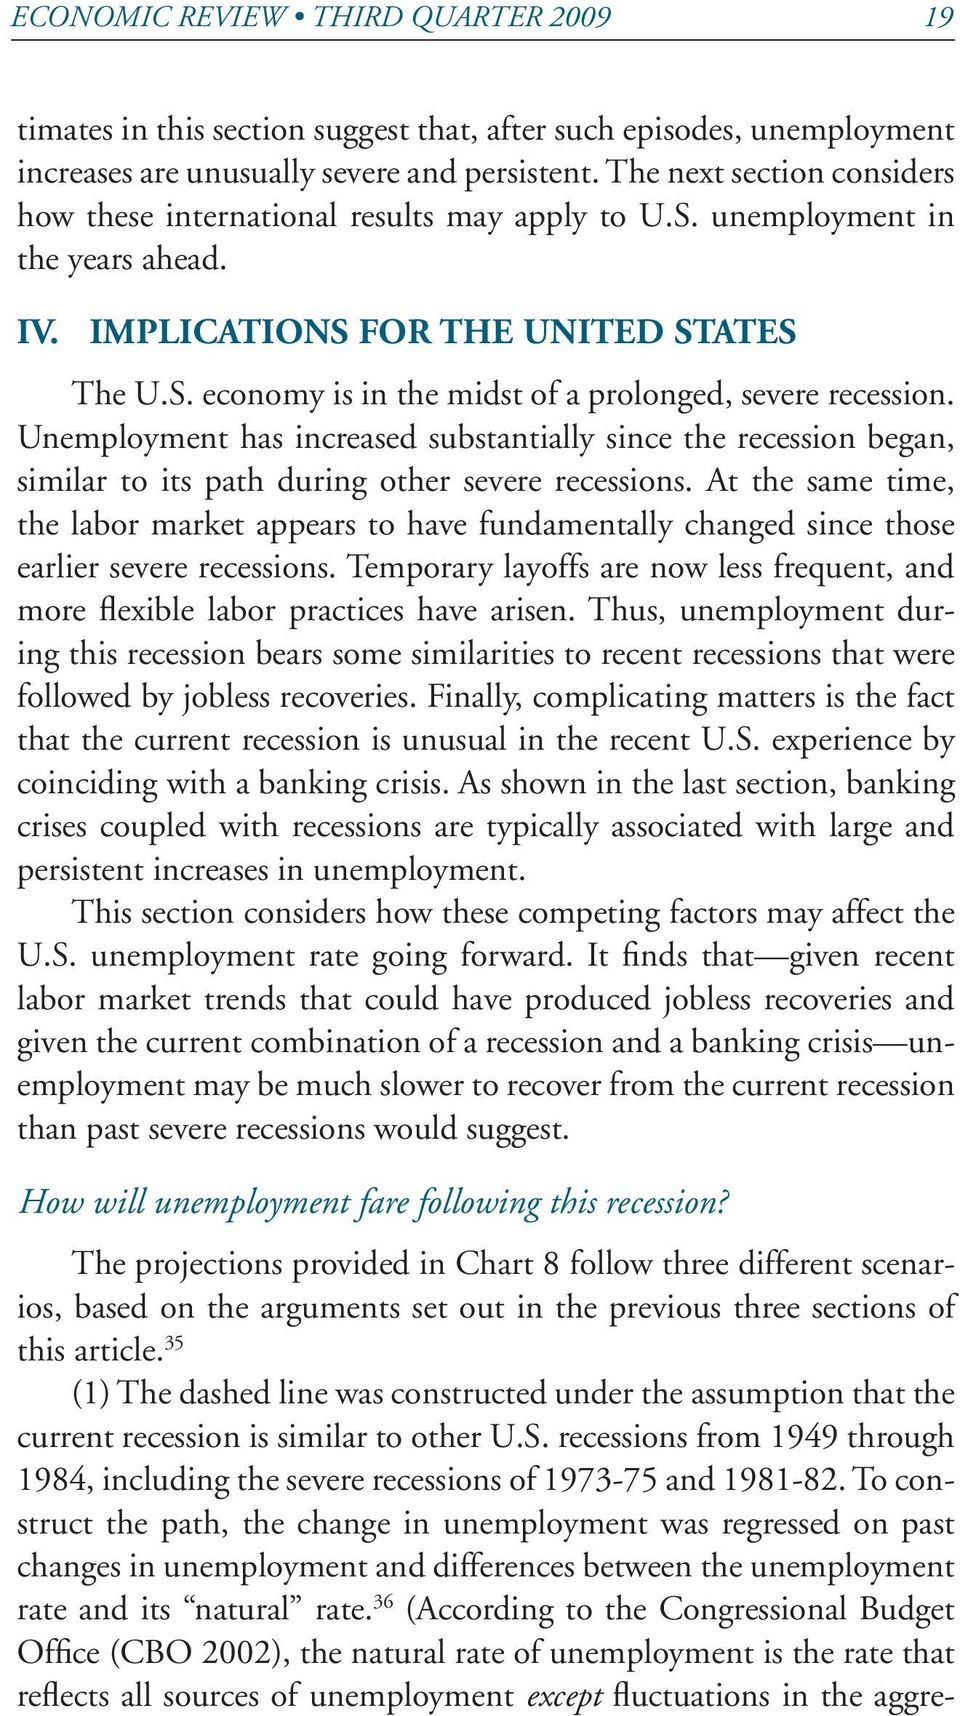 Unemployment has increased substantially since the recession began, similar to its path during other severe recessions.